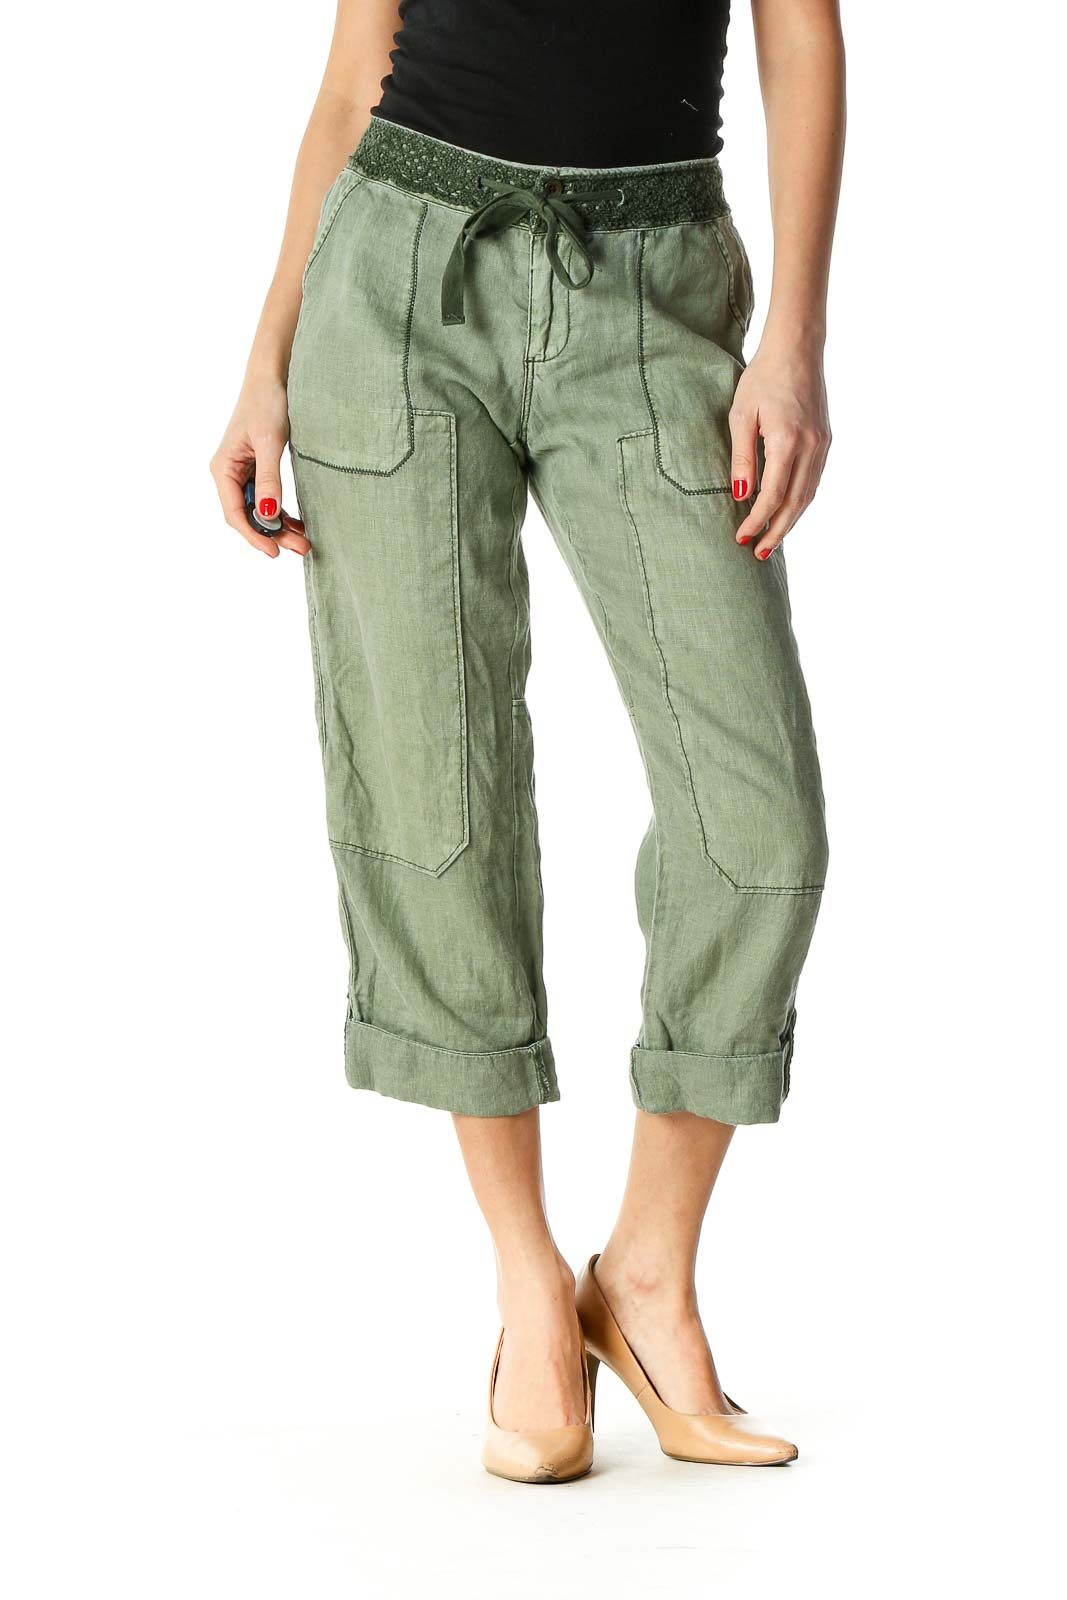 Green Casual Wide Leg Jeans Front